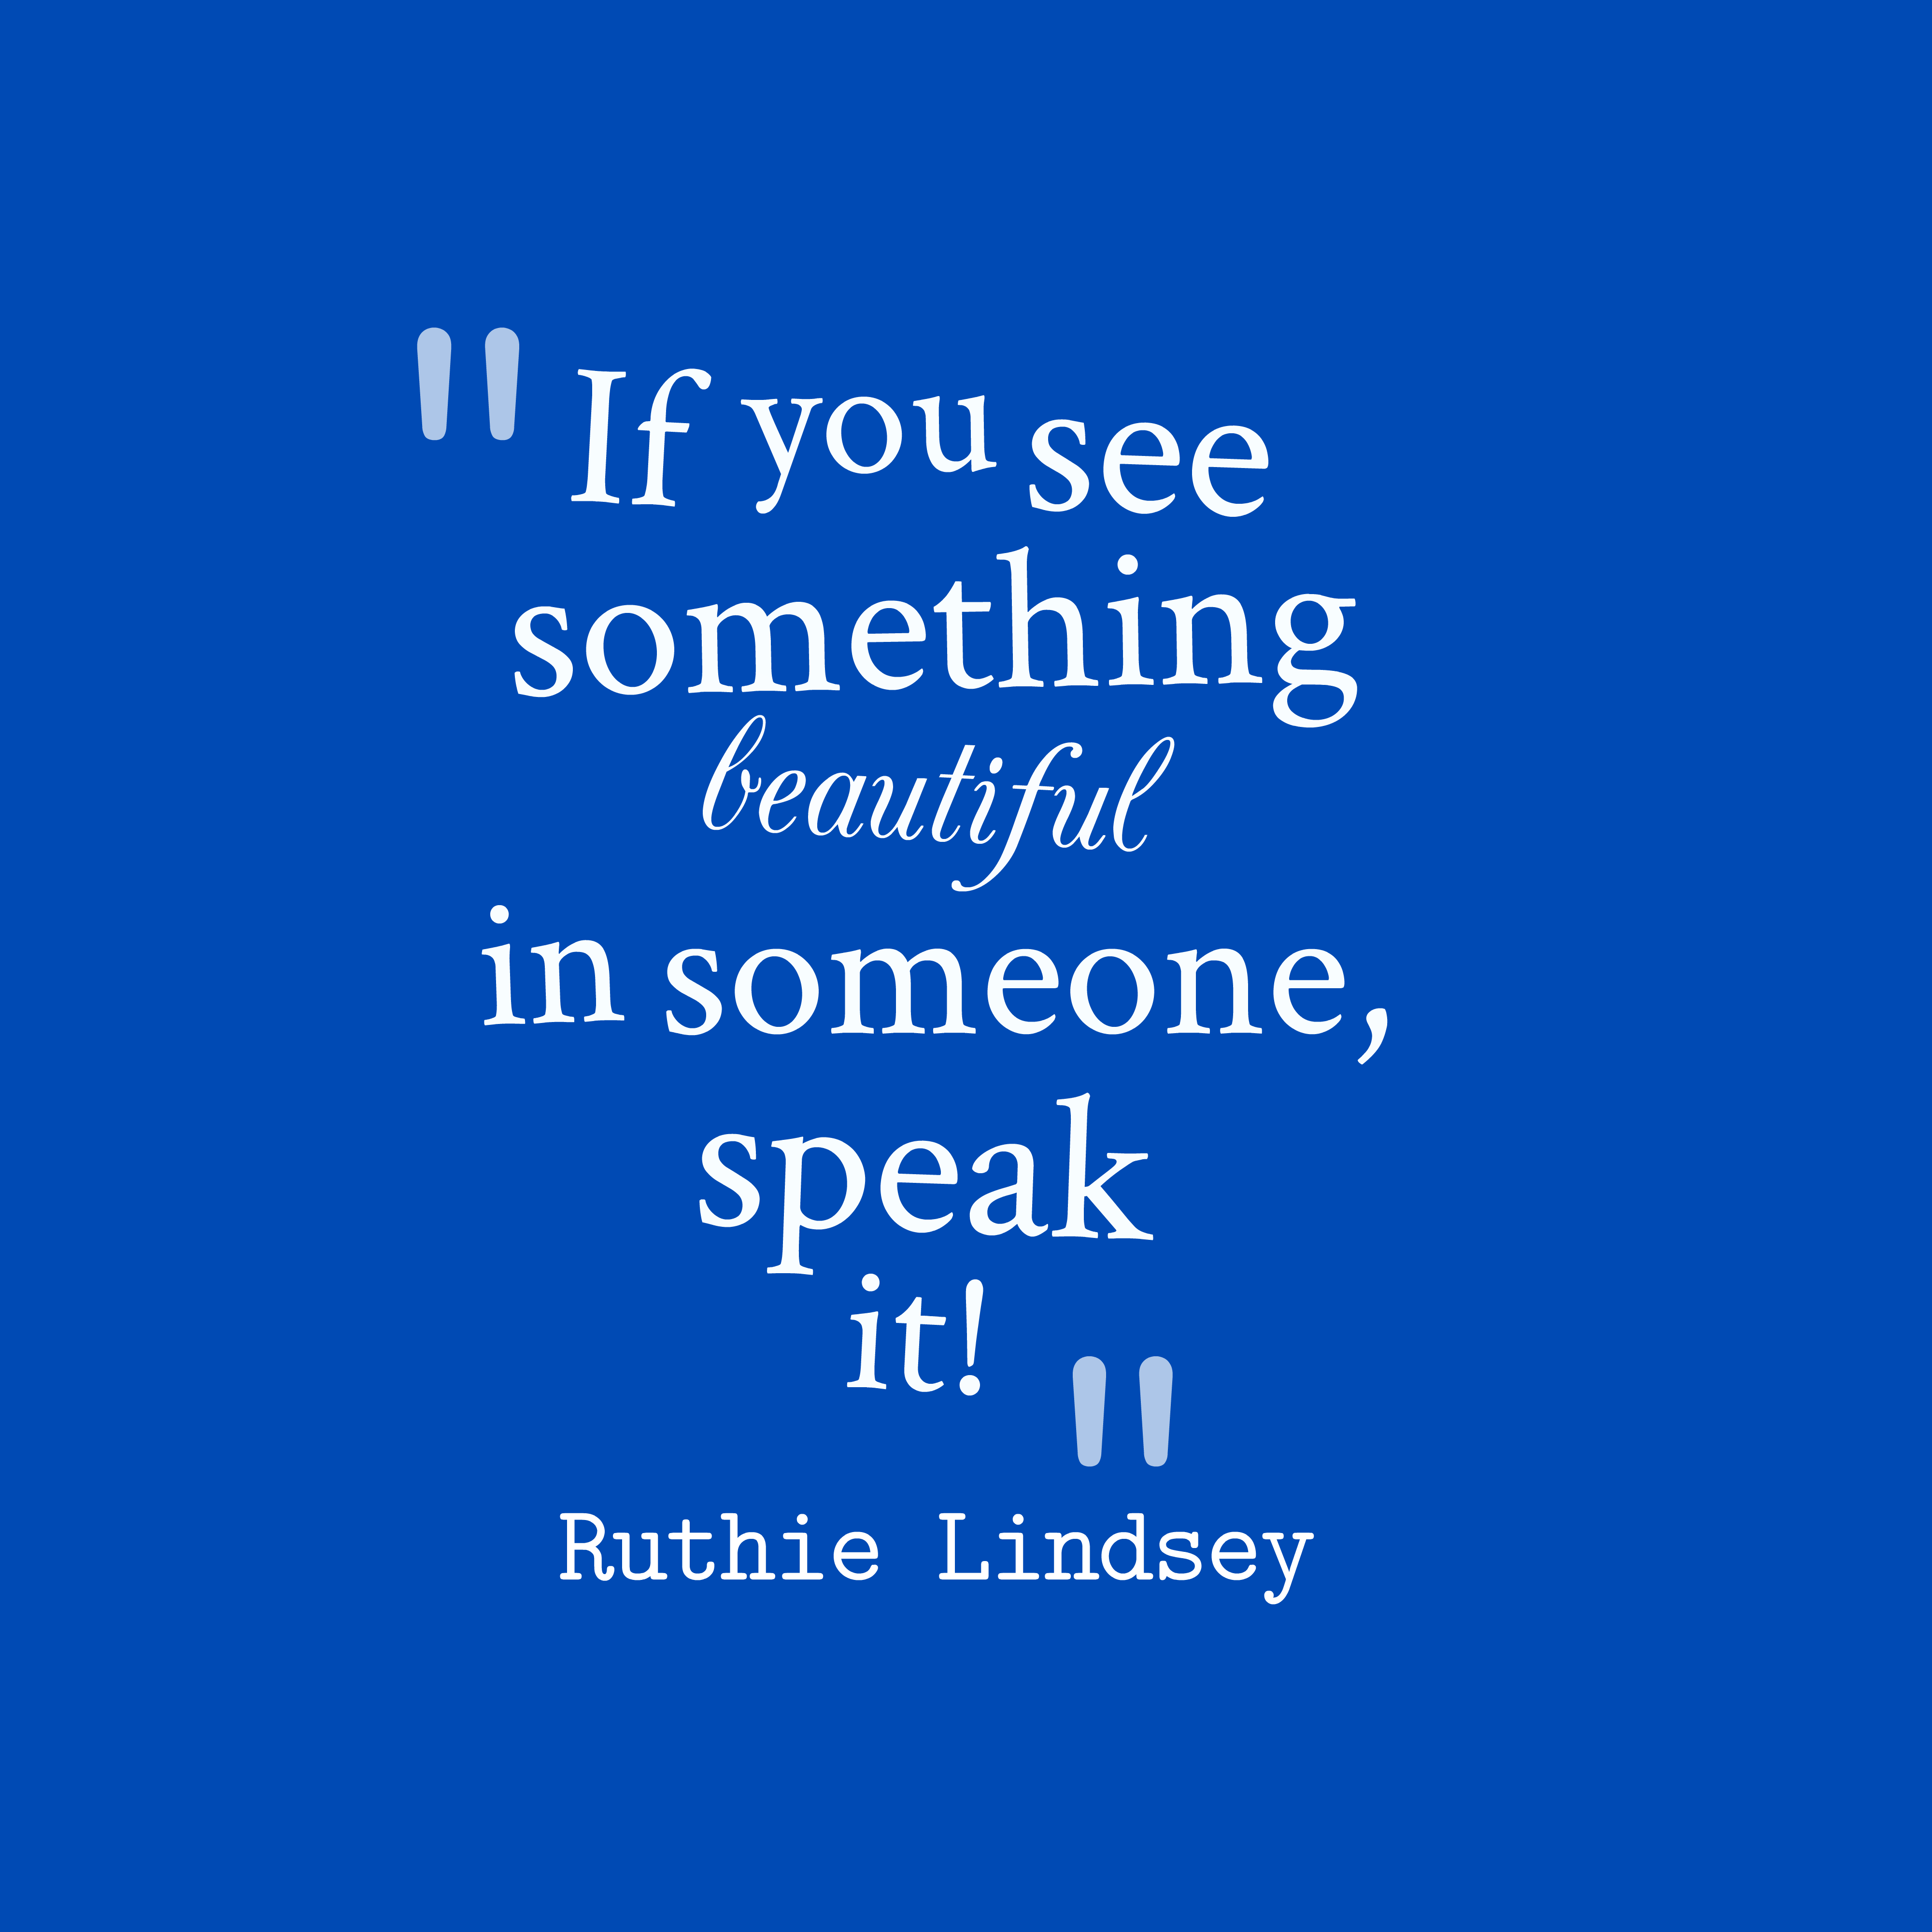 Quotes image of If you see something beautiful in someone, speak it!